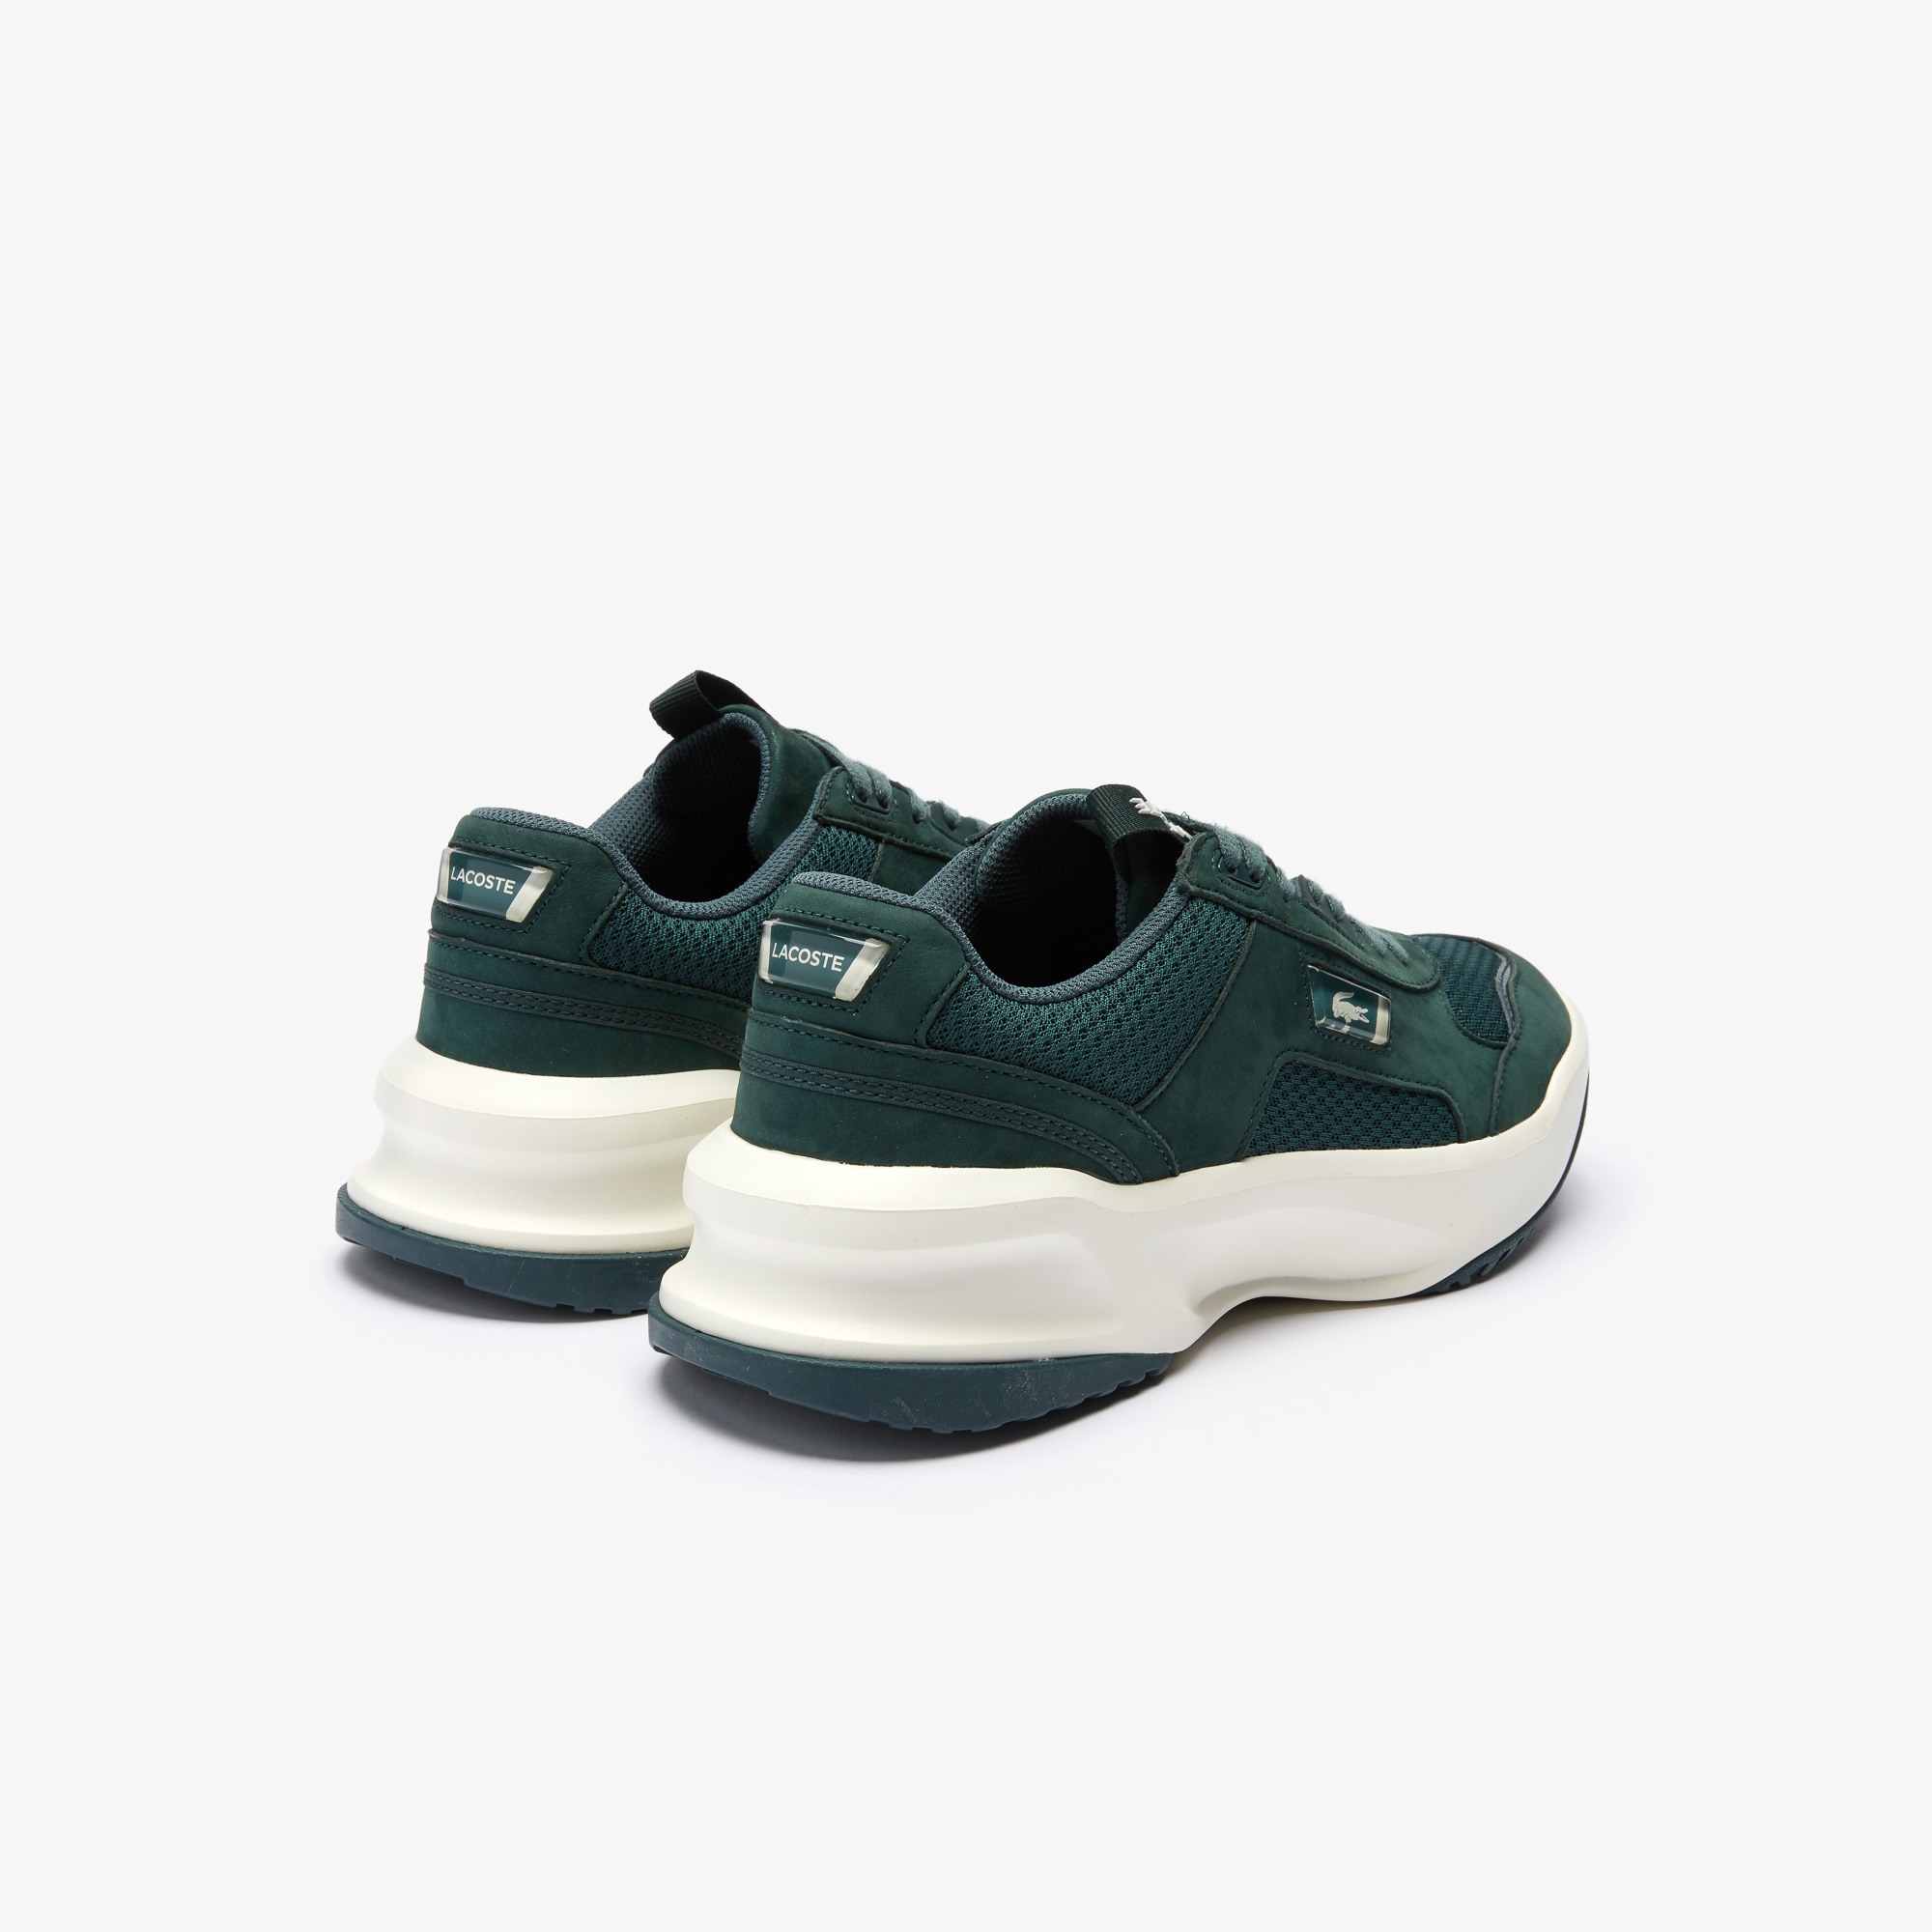 Lacoste Men/'s Ace Lift 0320 2 SMA Leather Trainers White